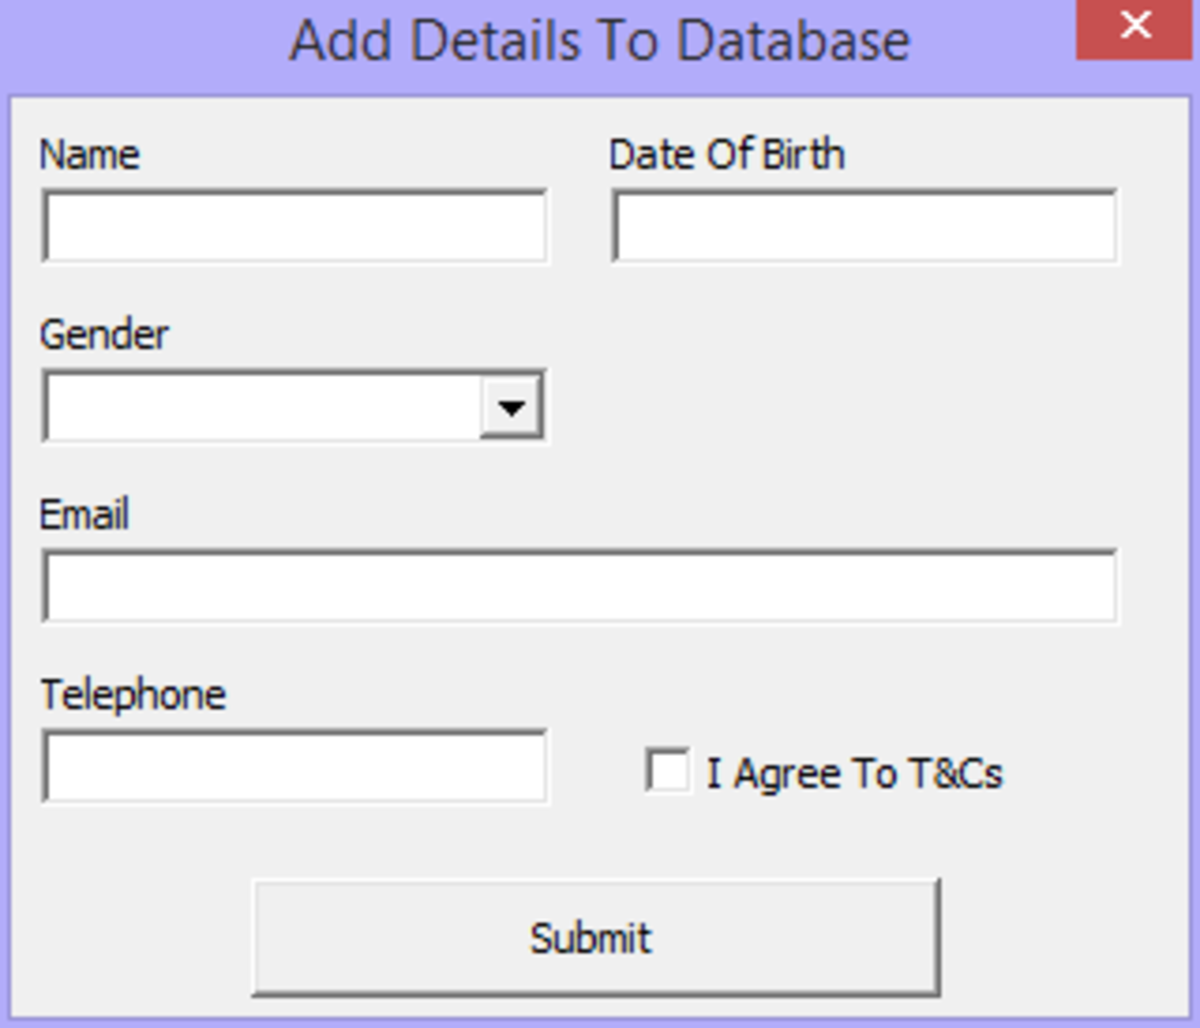 excel-vba-using-a-userfrom-to-populate-a-database